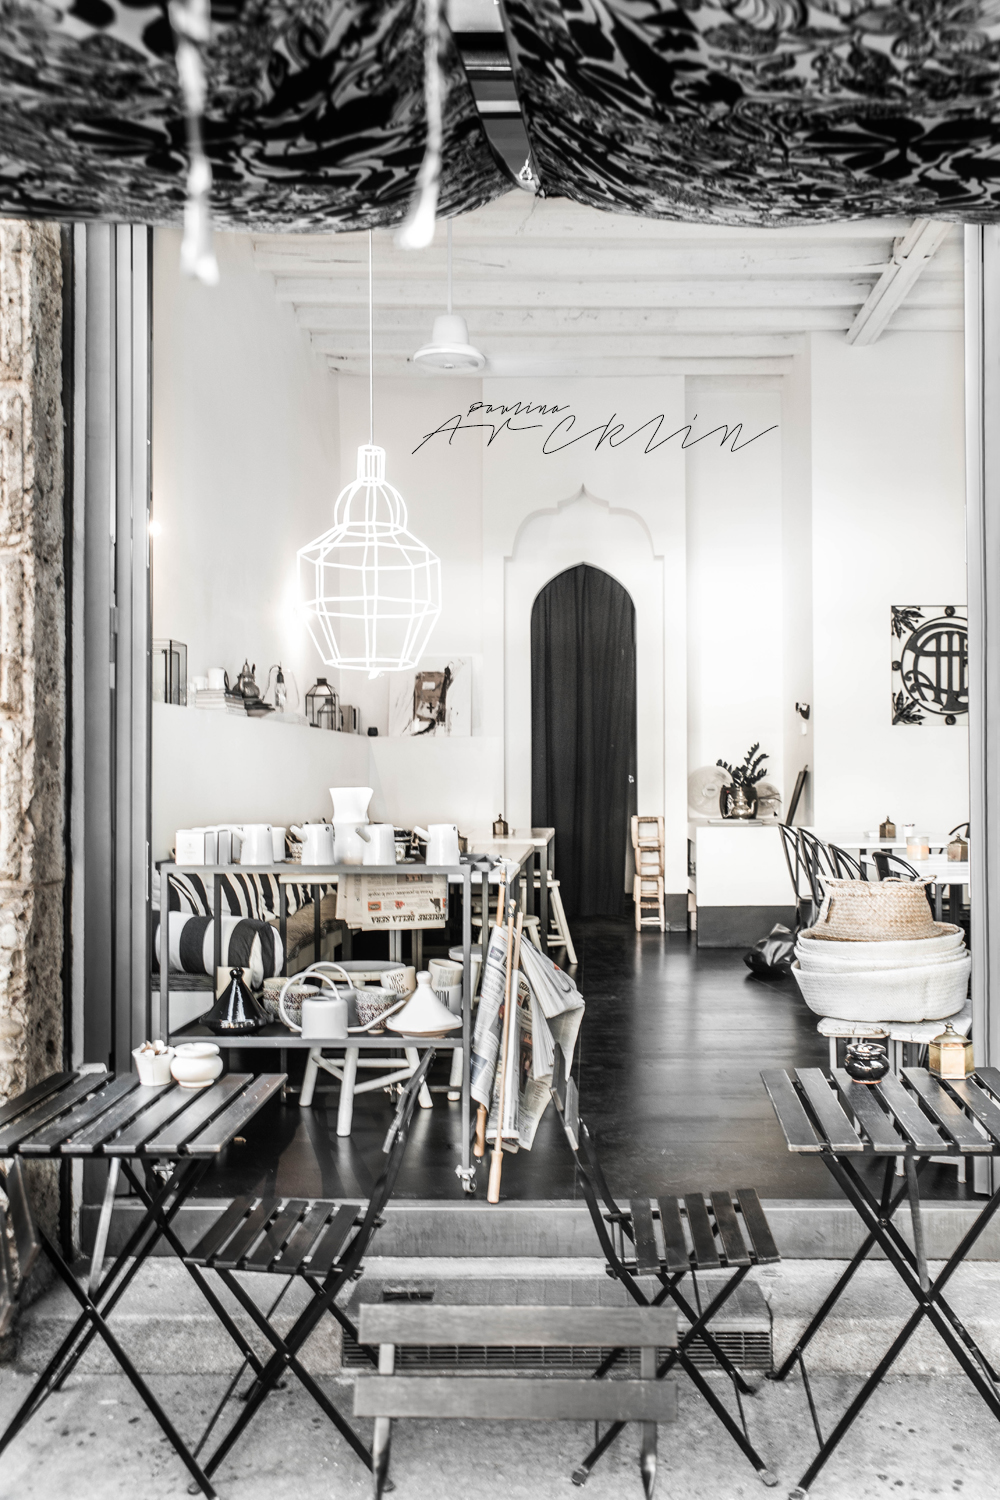 Italian interiors design restaurant milan with ethnic scandi mood - Italian home interior design ...